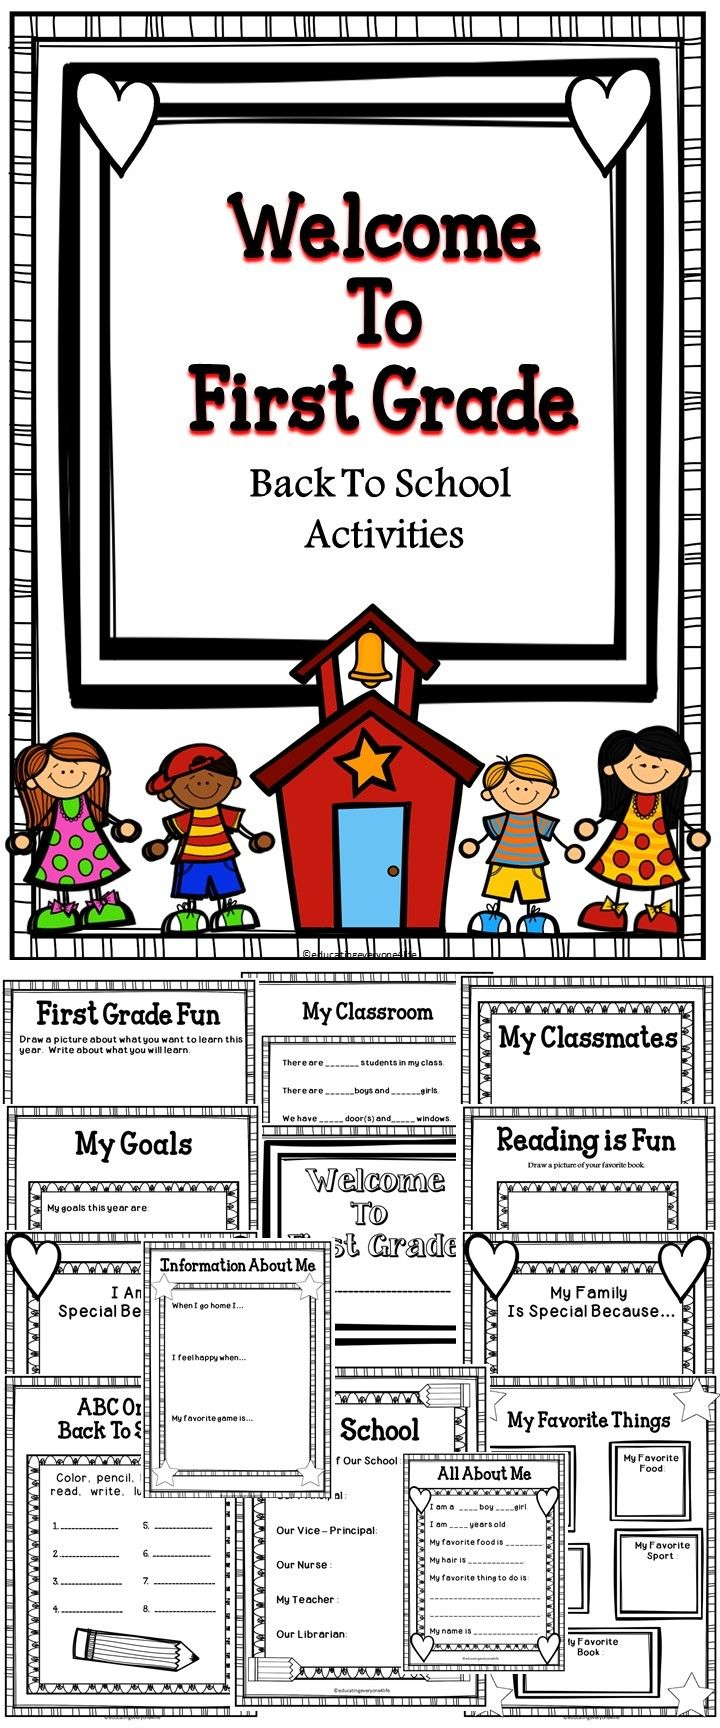 Welcome To First Grade - A fun Back To School teaching resource for first graders. #tpt #education